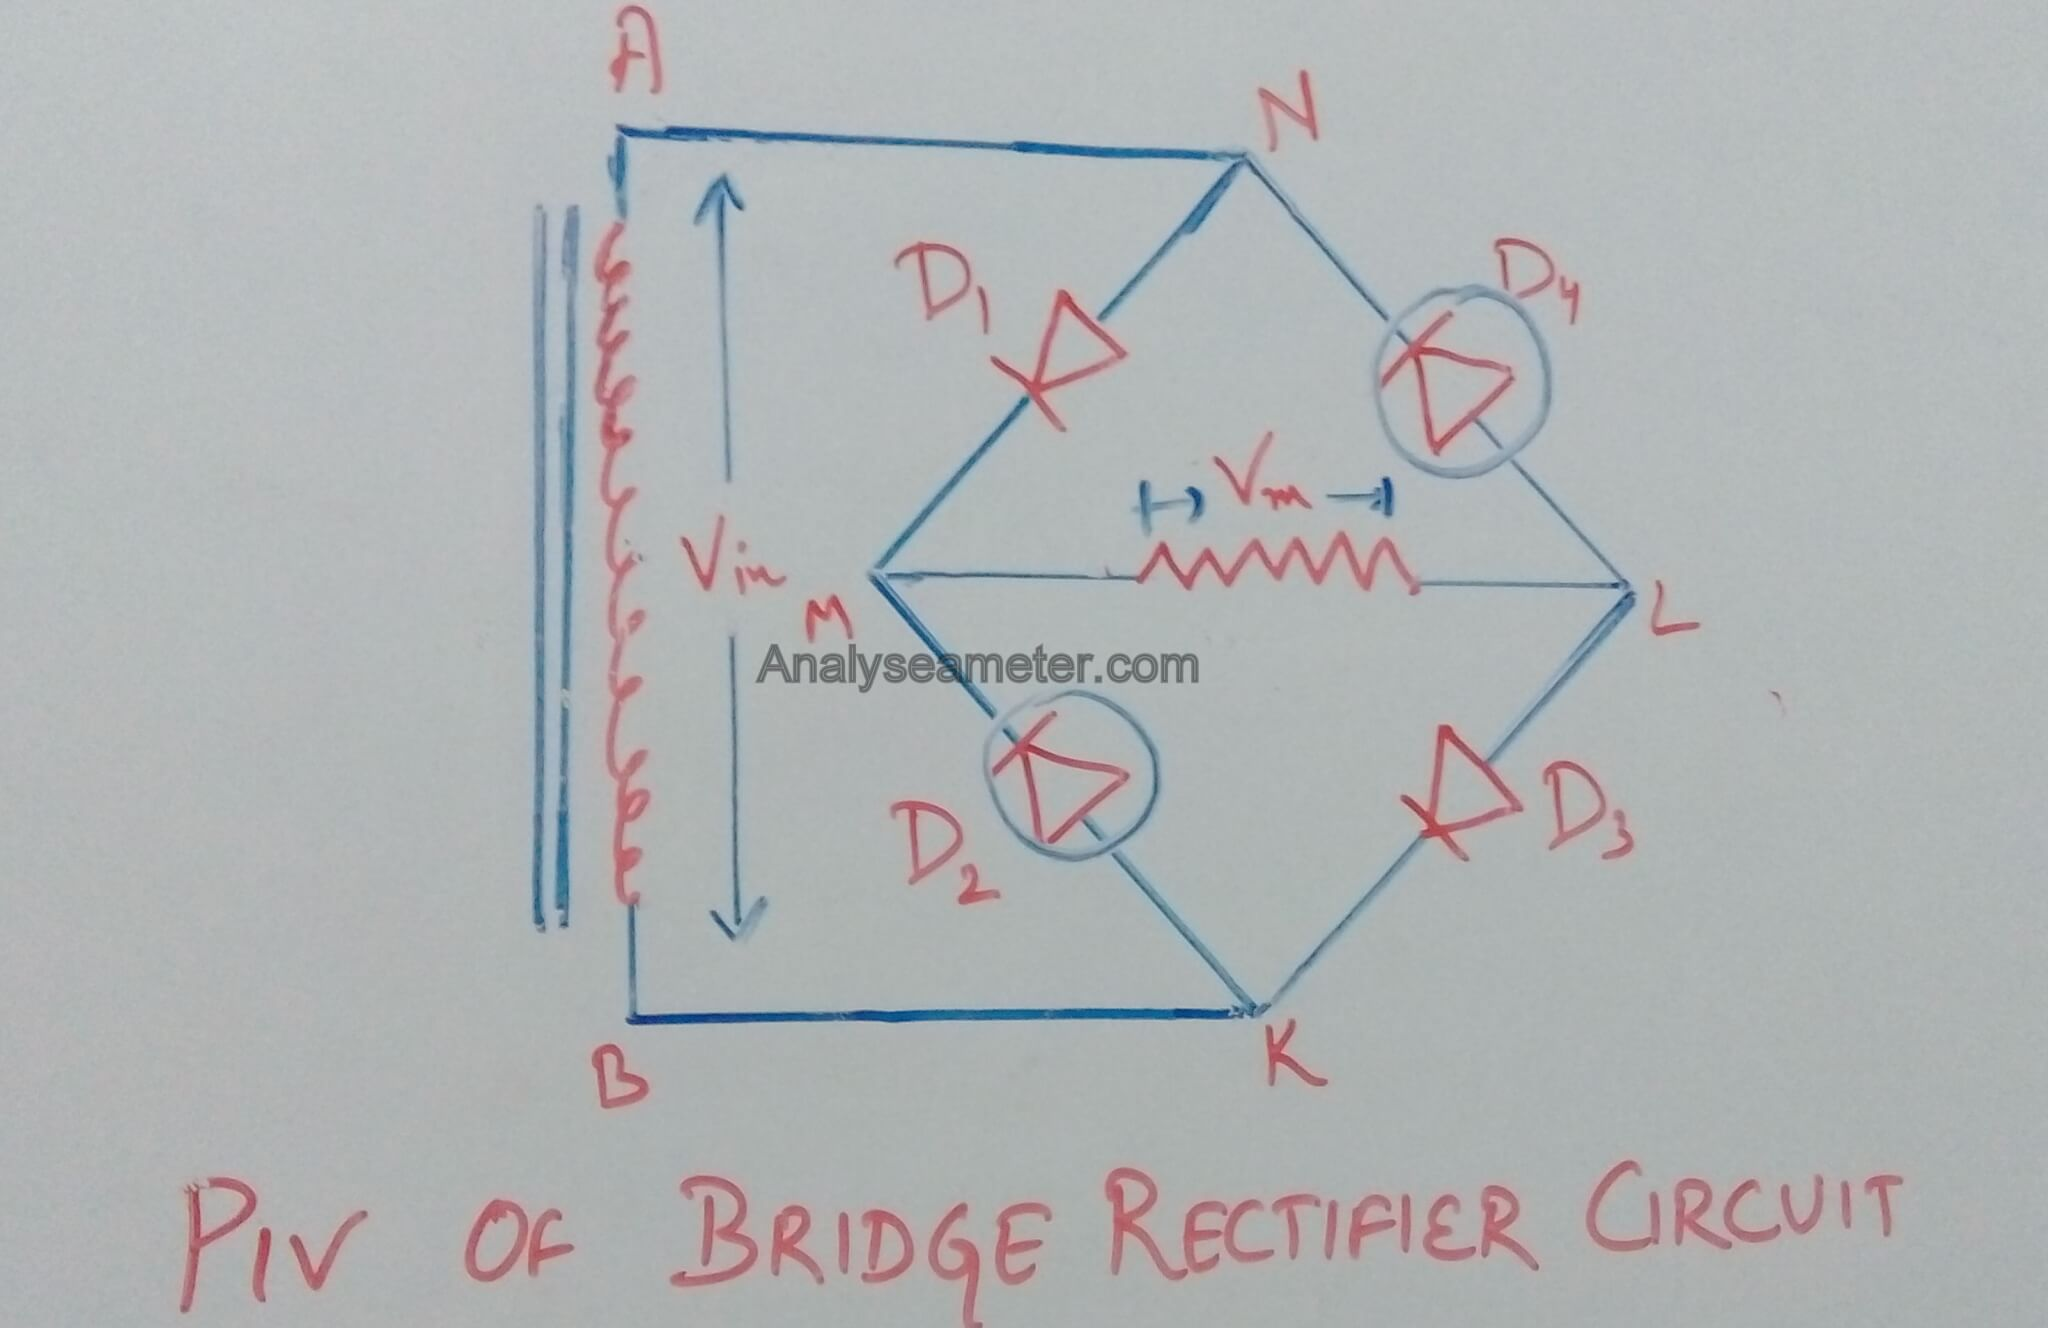 Bridge Rectifier Circuit And Operation Analyse A Meter Of Full Wave Piv Image